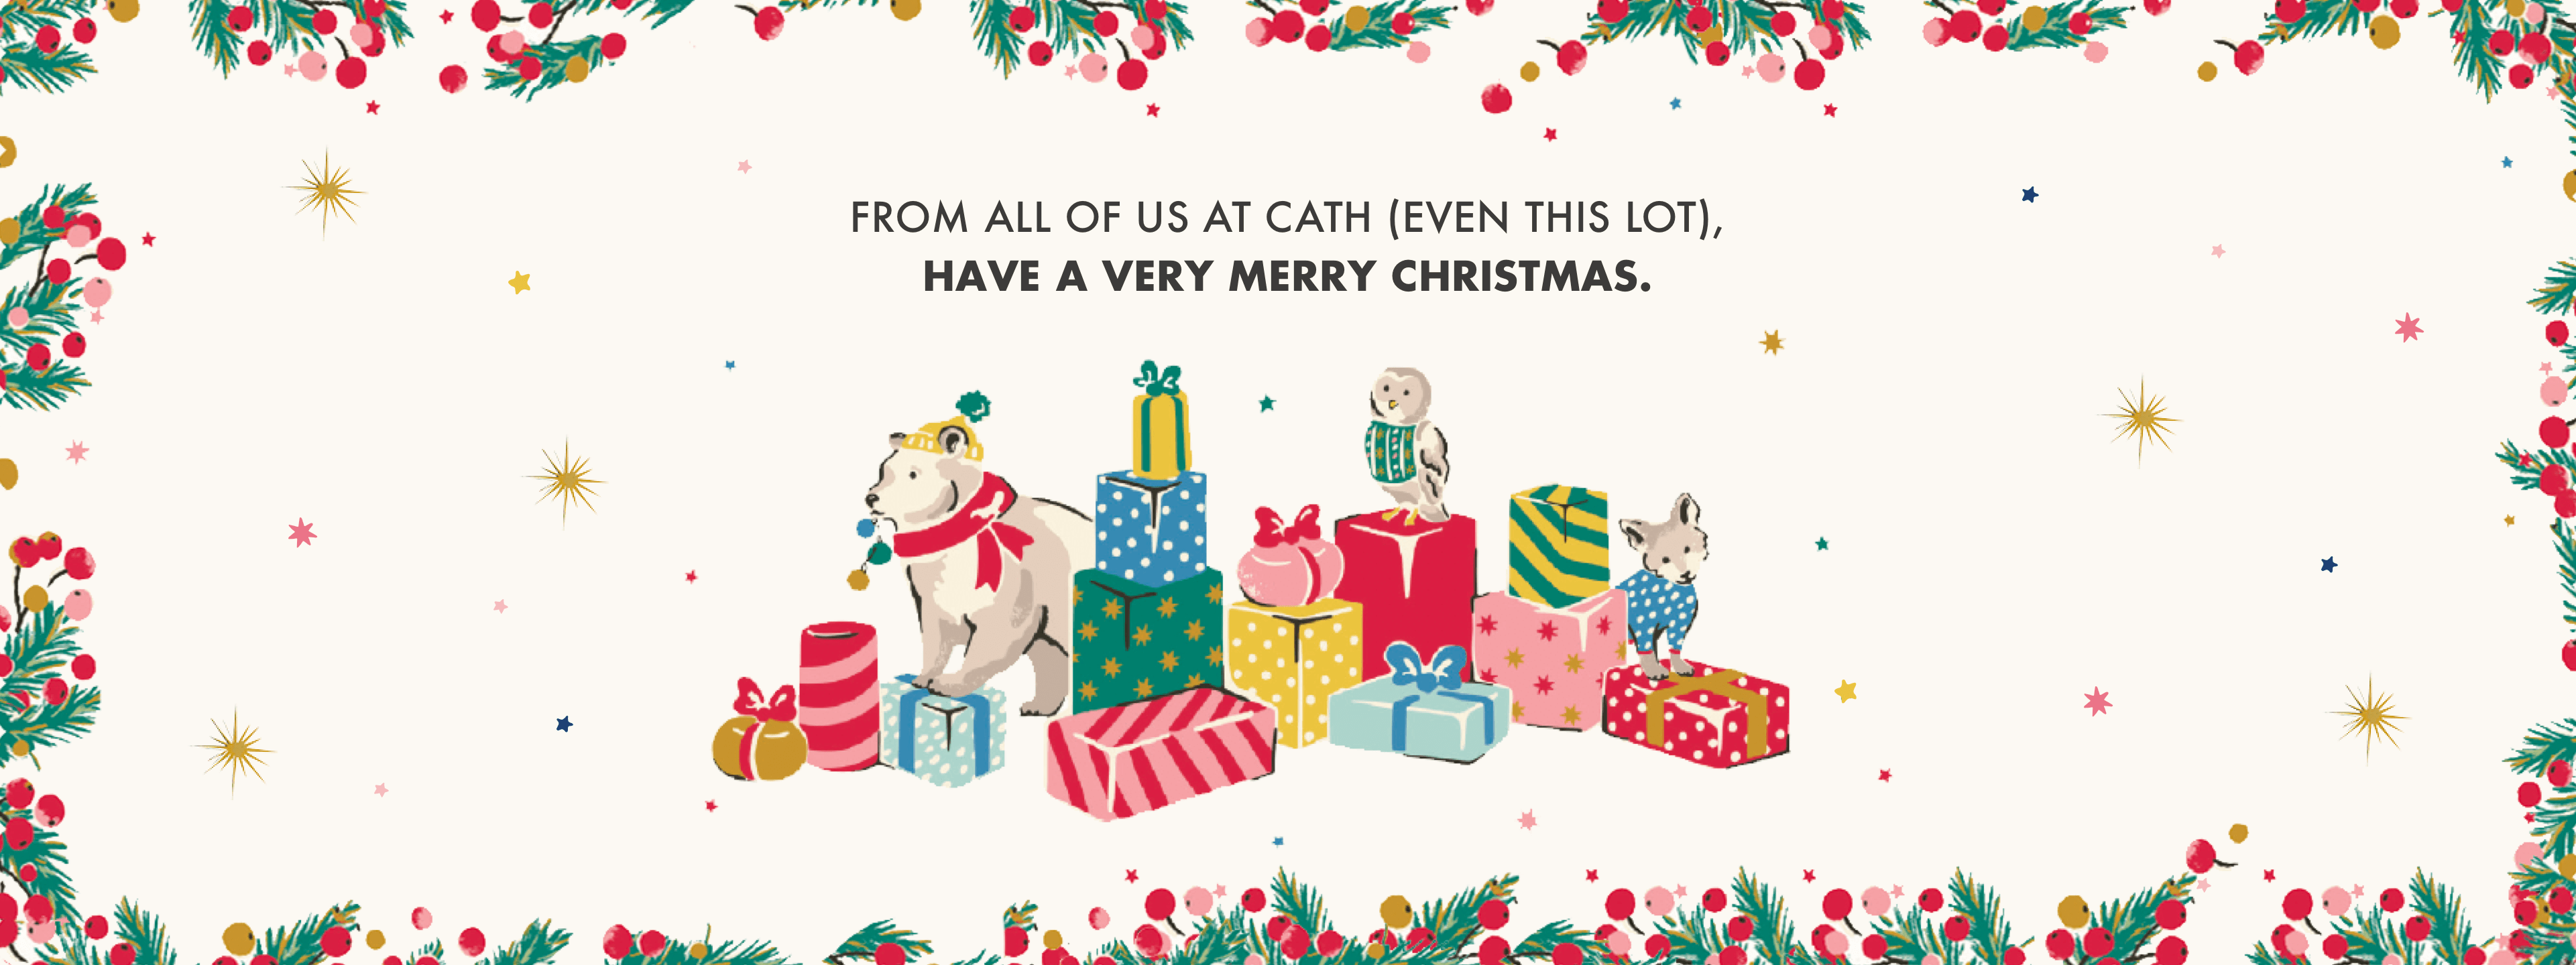 From all of us at Cath. Have a very Merry Christmas - Cath Kidston